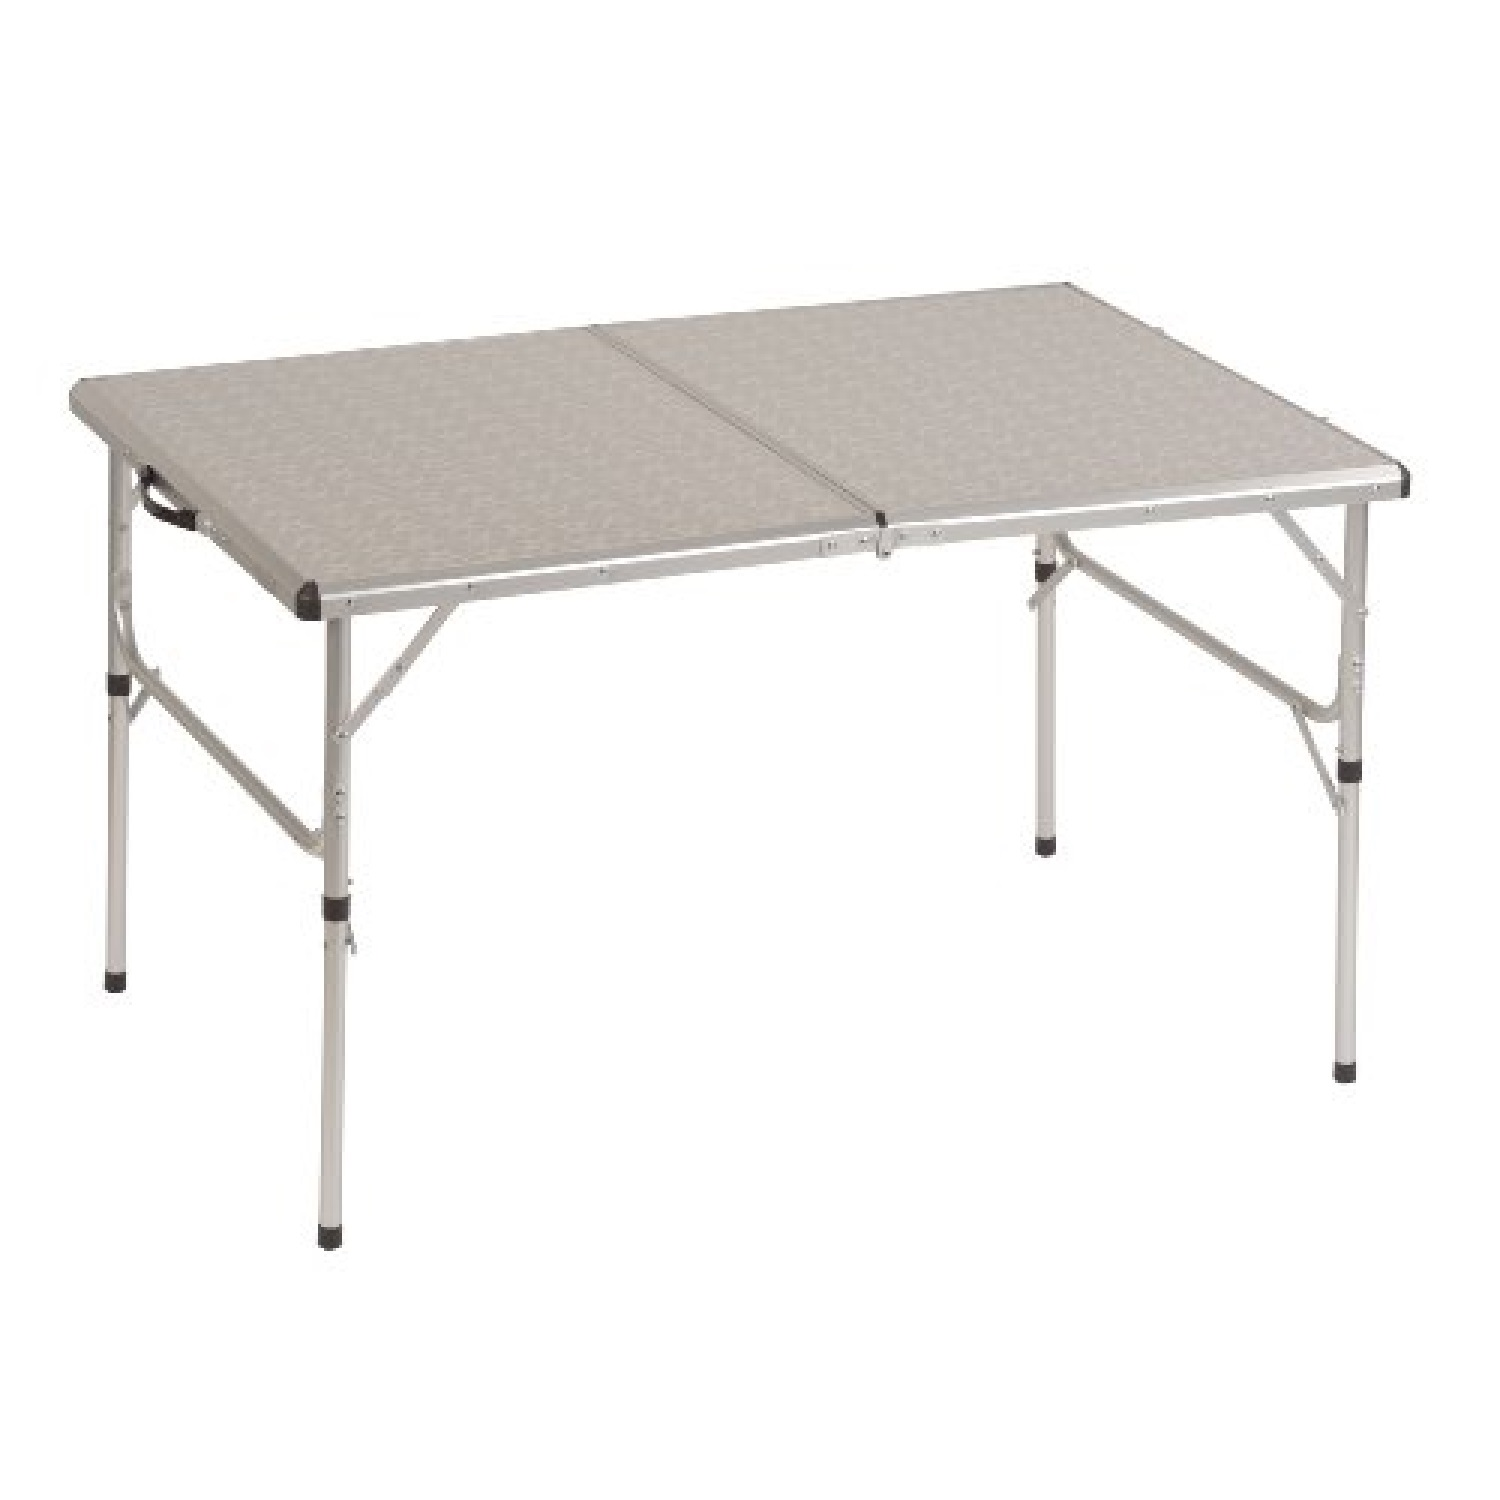 Home Depot Layout Design Coleman Pack Away Outdoor Folding Mosaic Table 2000016595